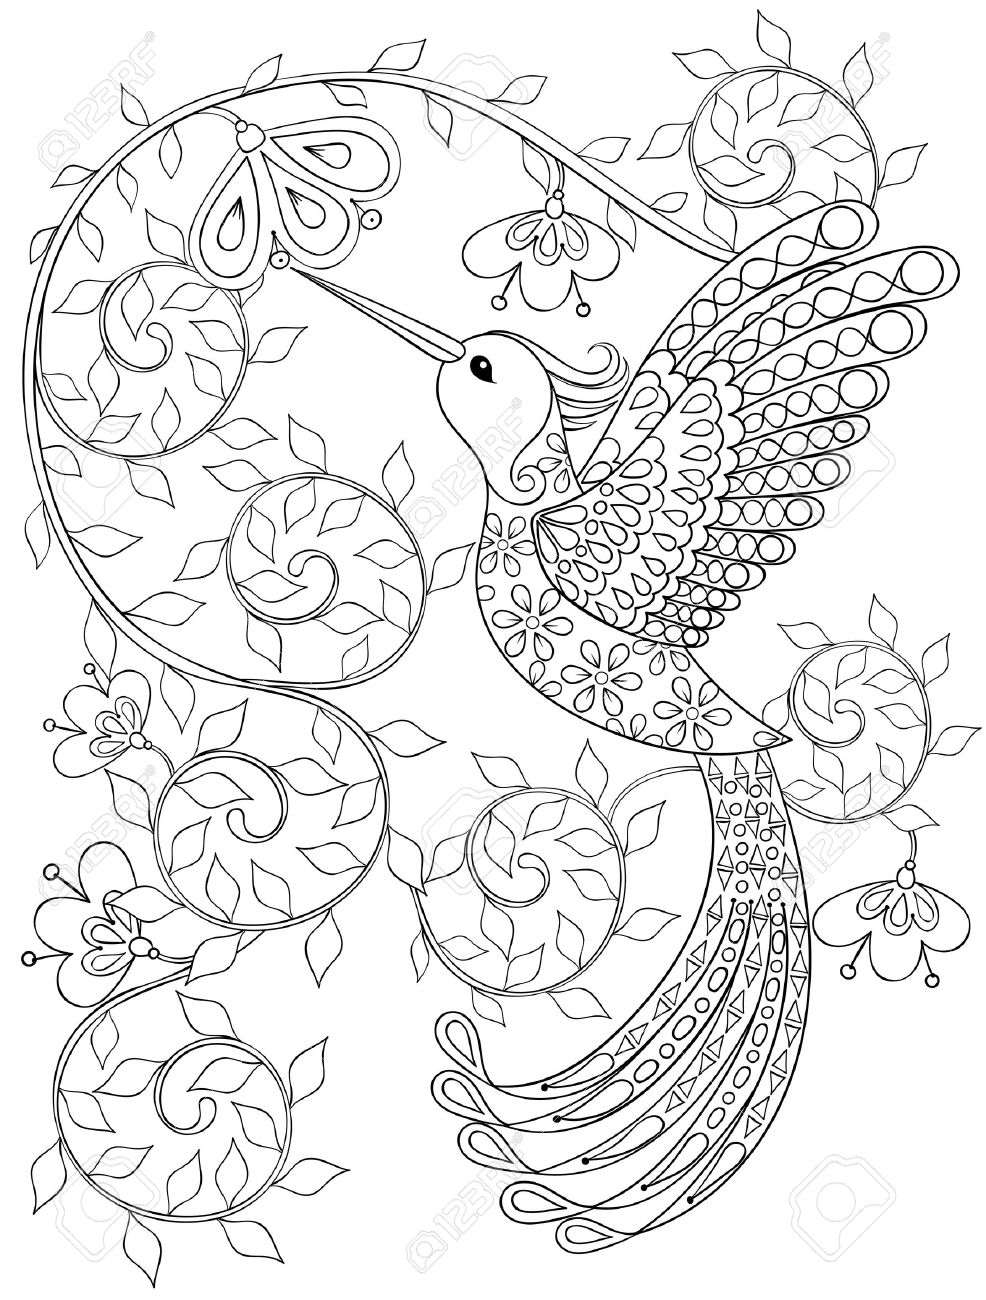 Coloring Page With Hummingbird, Zentangle Flying Bird For Adult ...